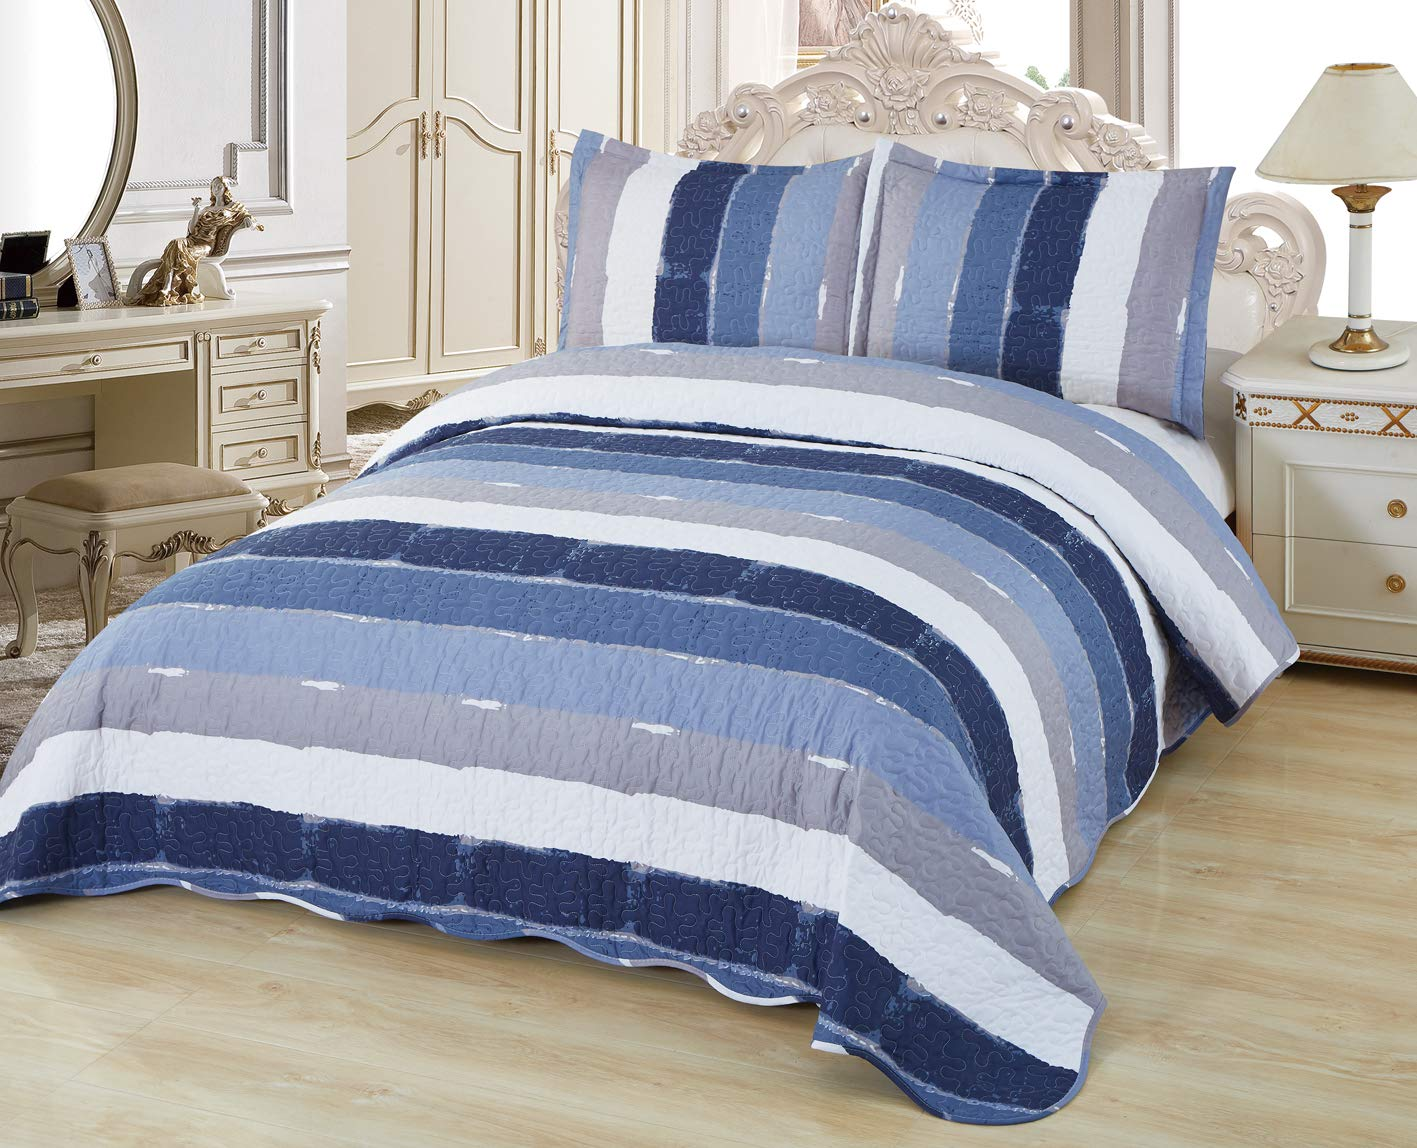 Sapphire Home 3 Piece Full/Queen Size Quilt Bedspread Coverlet Bedding Set w/2 Pillow Shams, Soft Pre-Washed Bed Cover, Elegant Stripes Pattern, Blue Gray Navy White, Queen 8143 Kimora